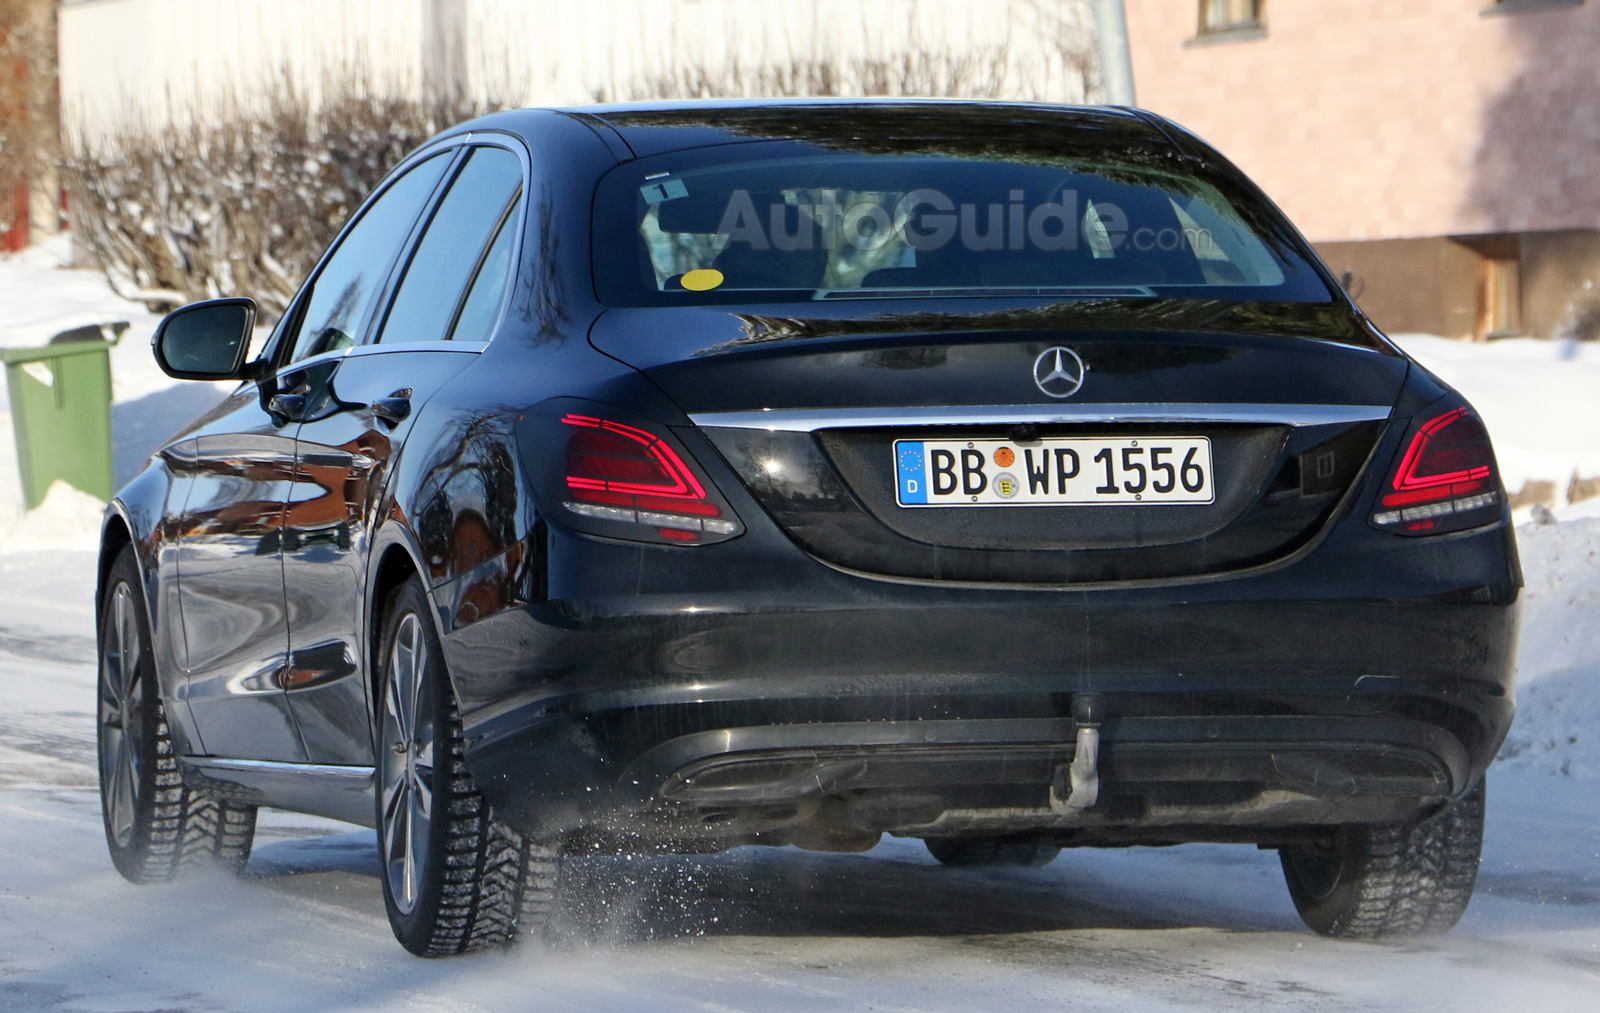 Facelifted 2019 Mercedes Benz C Class Spied Looking Like A